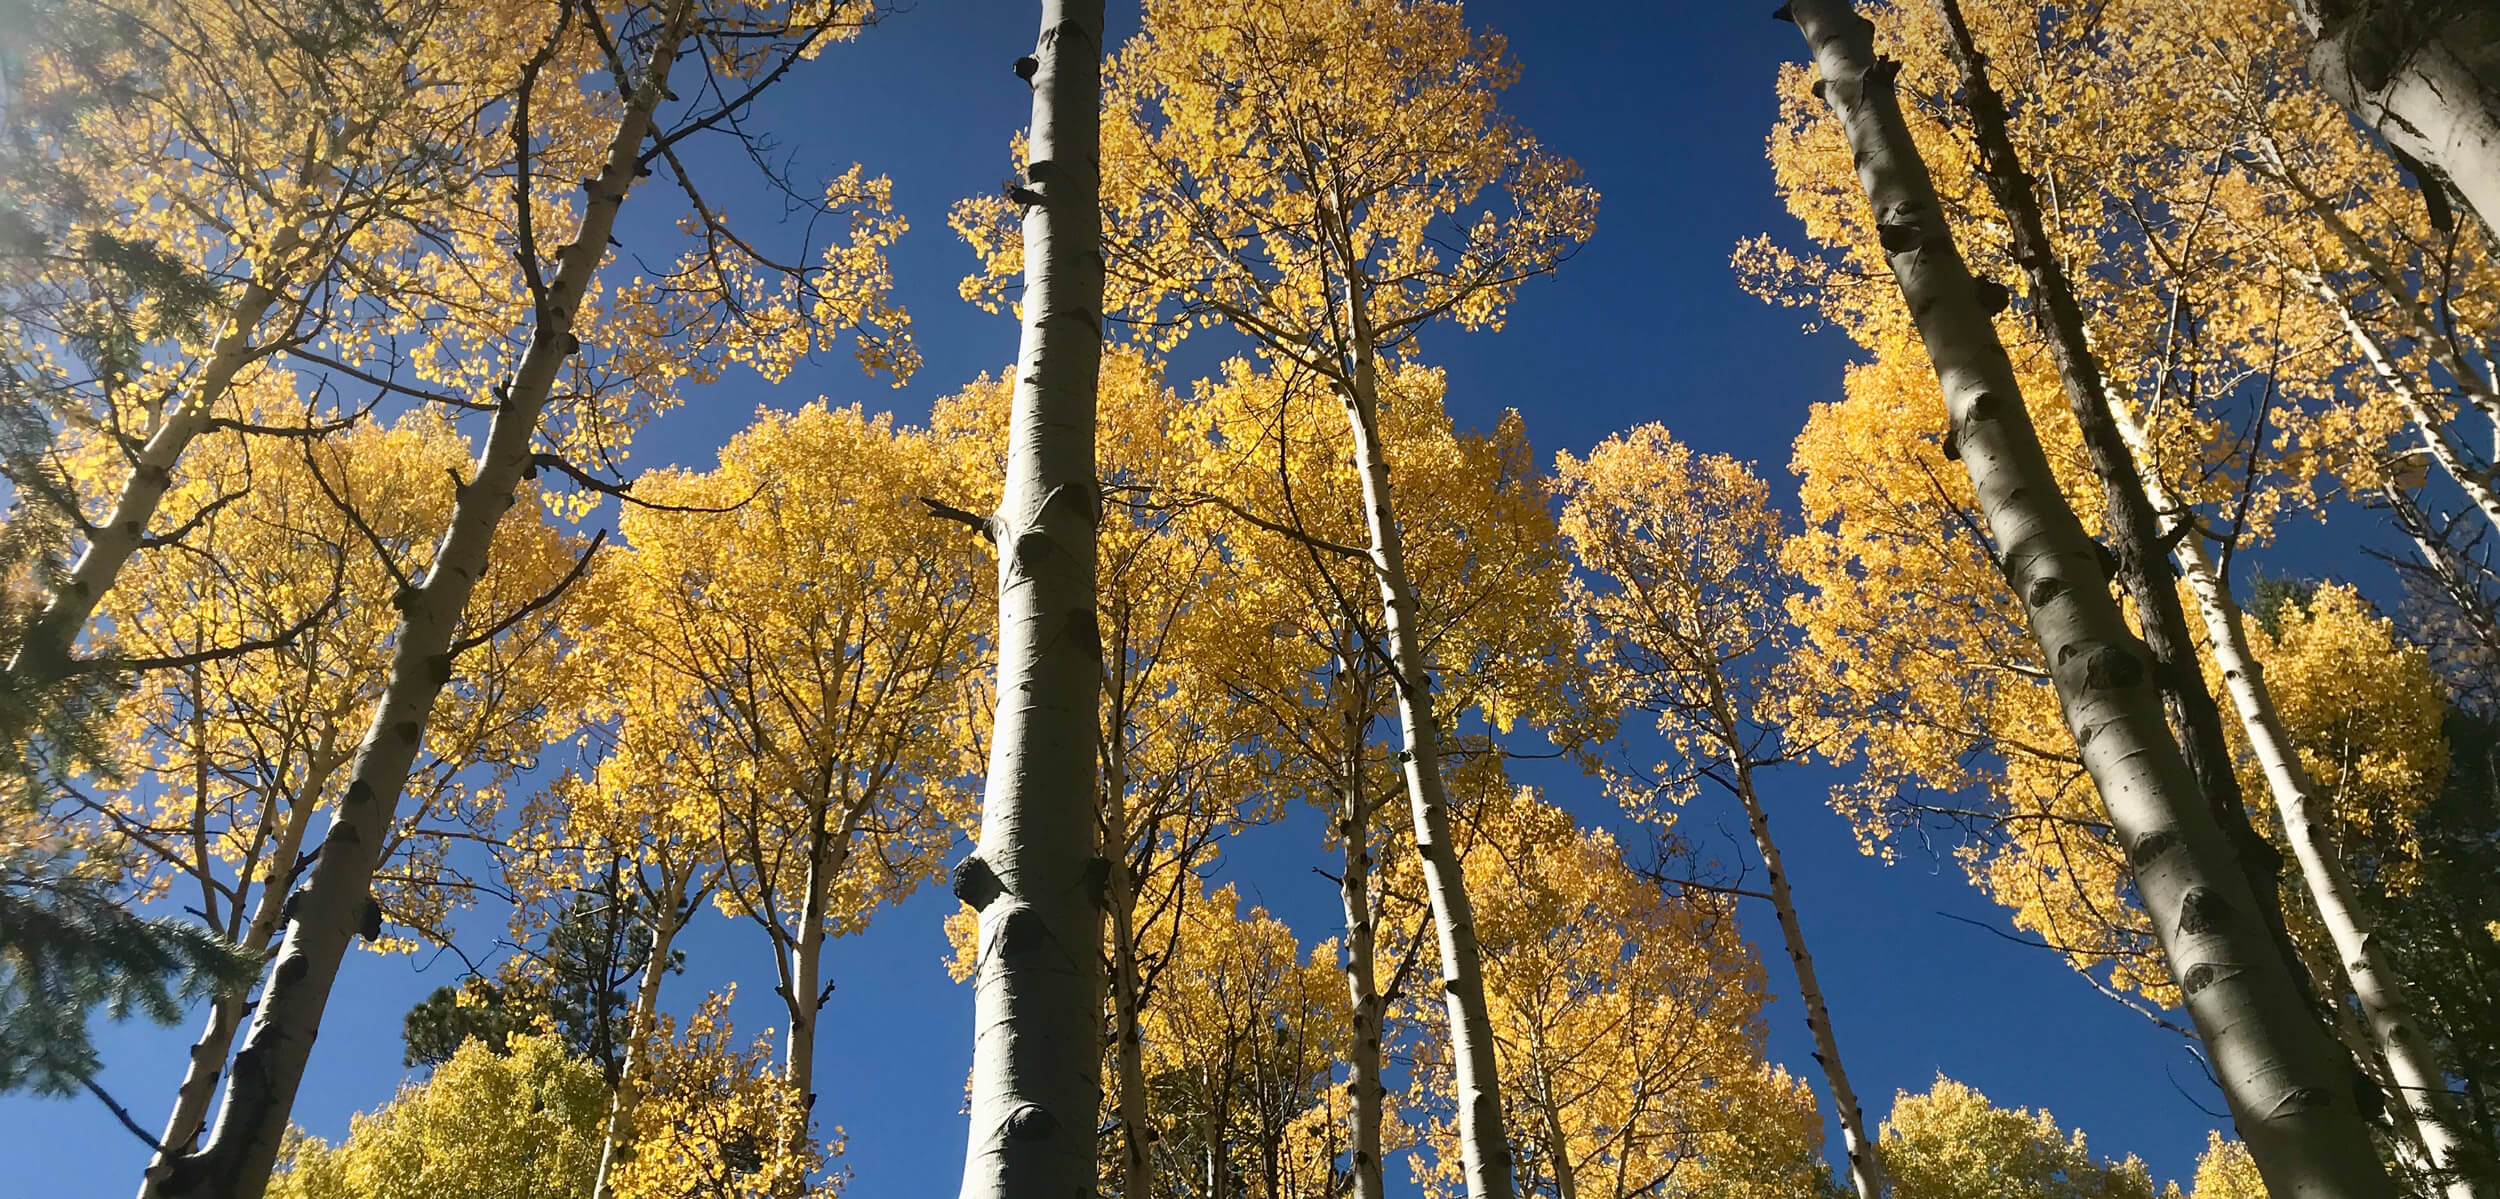 Aspen trees in autumn with yellow leaves in the San Francisco Peaks in Flagstaff Arizona